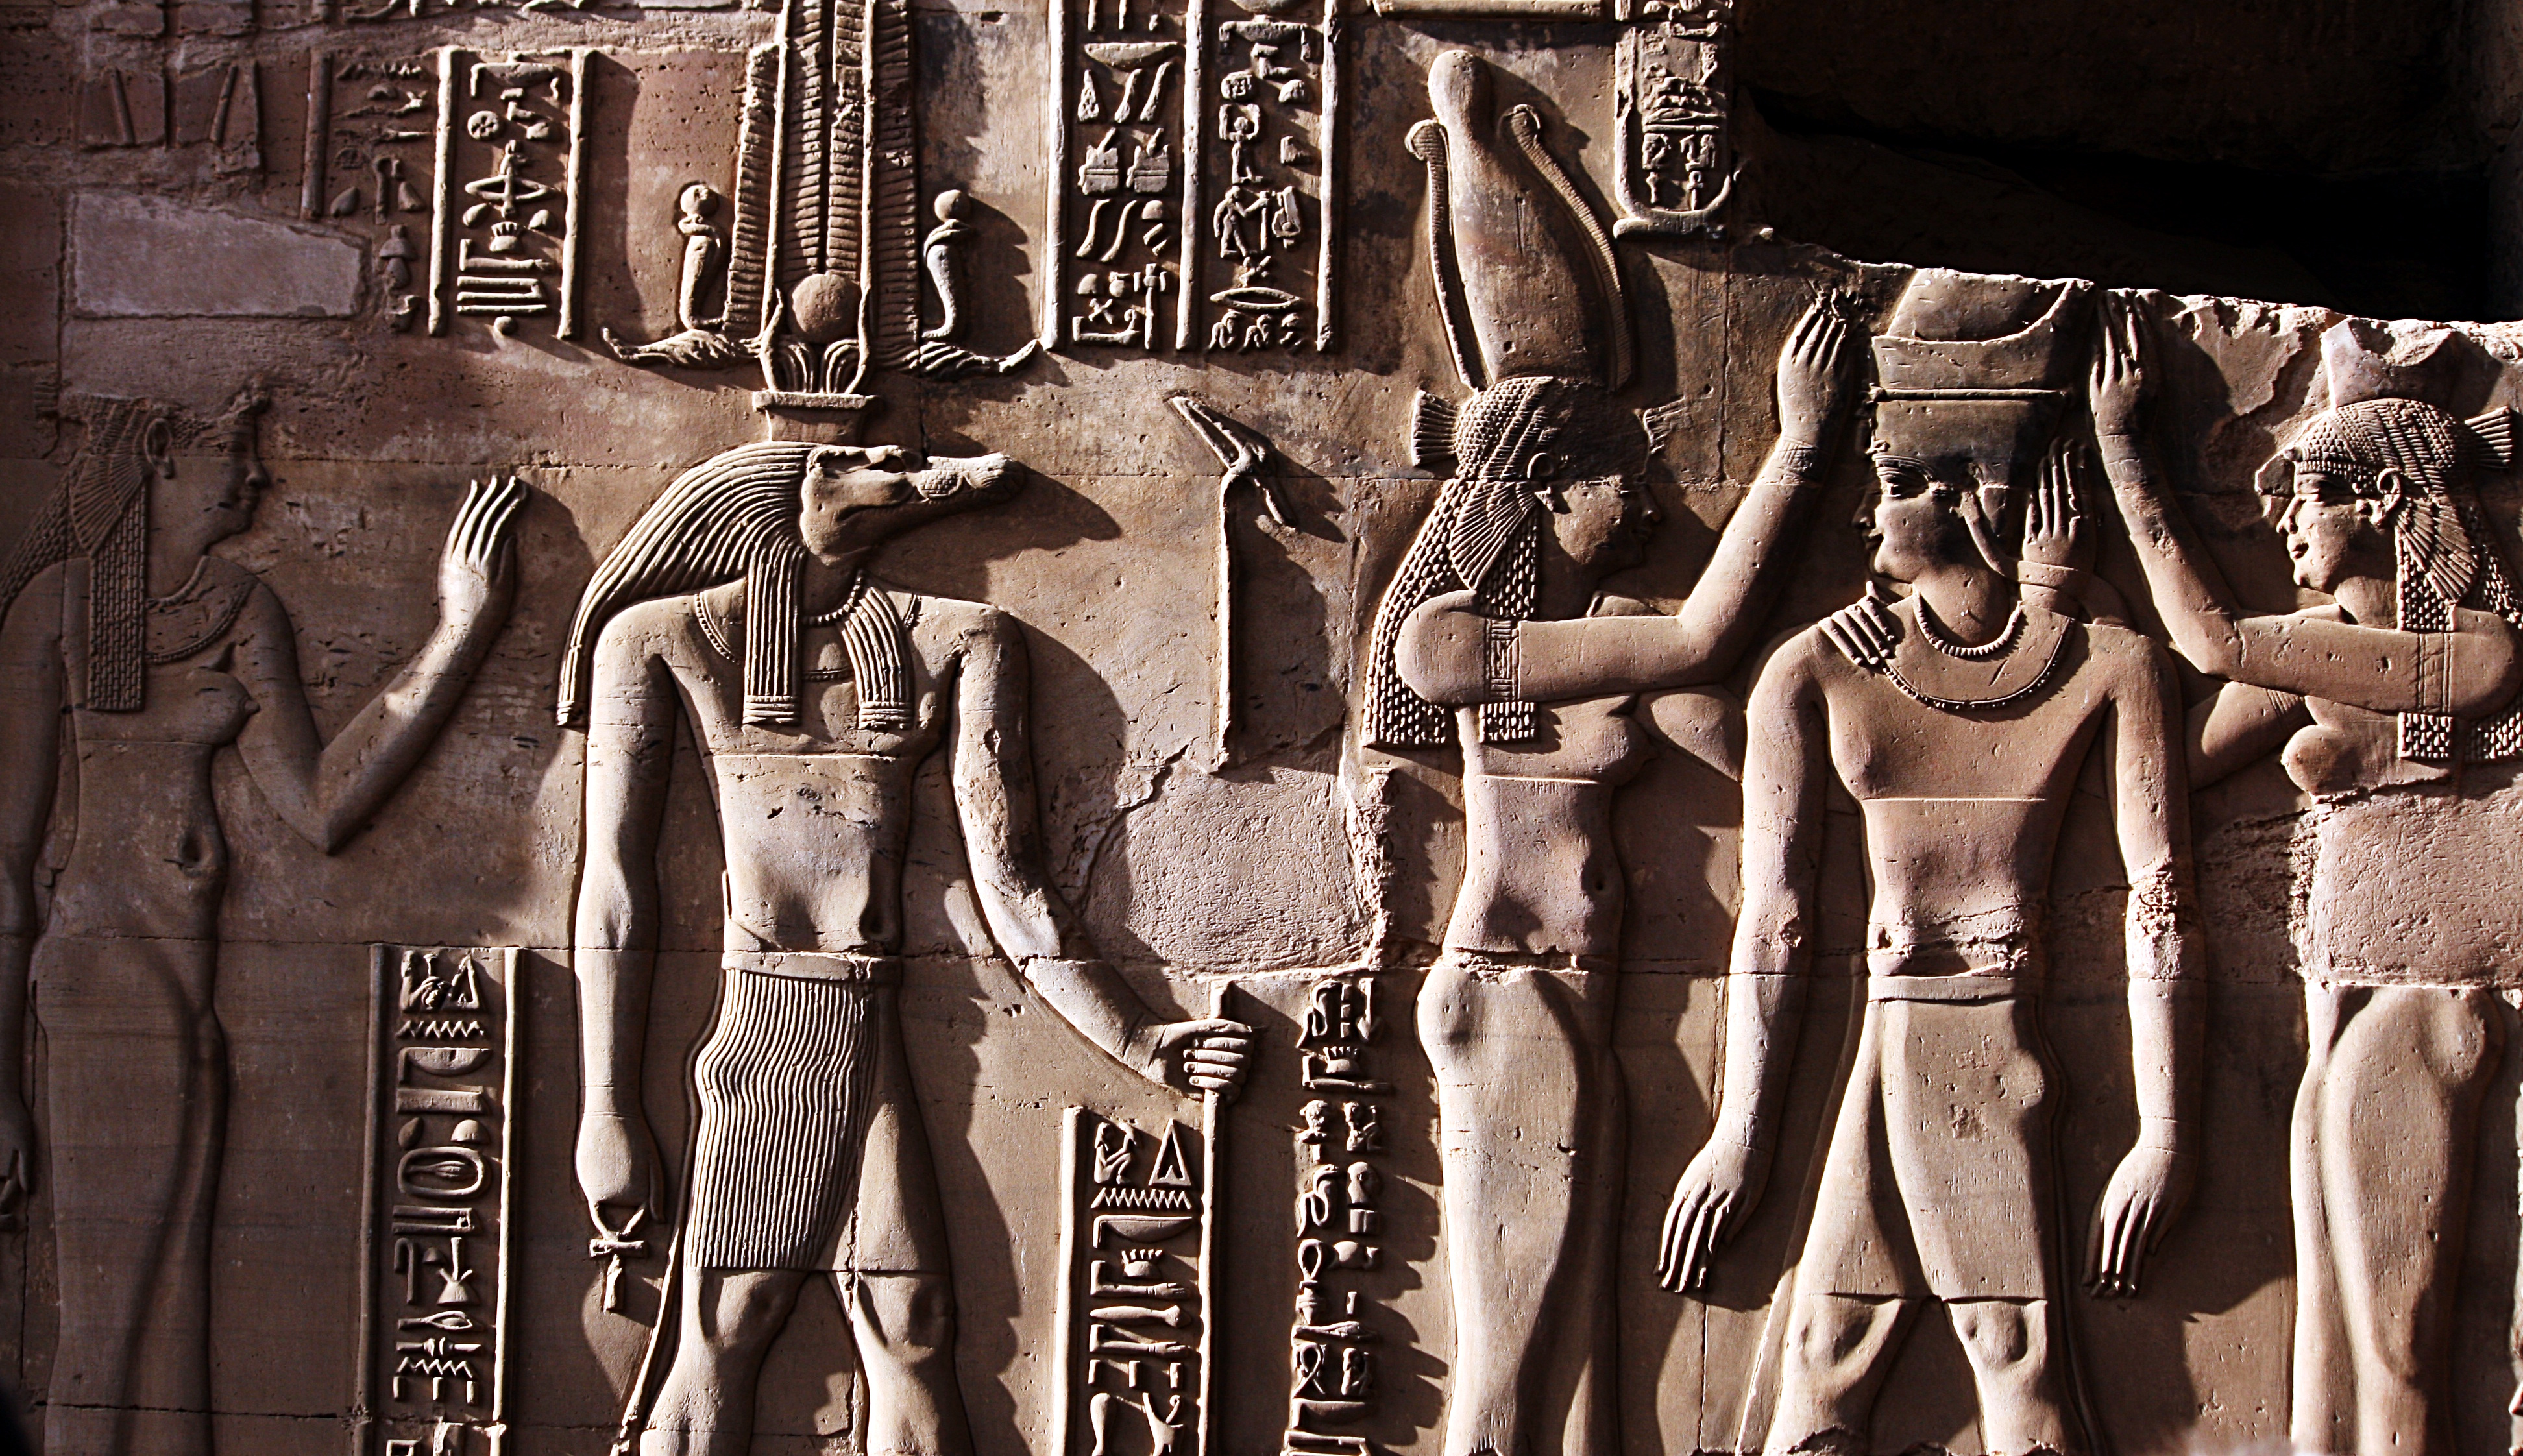 Sobek as seen in ancient Egyptian stone monument carvings...